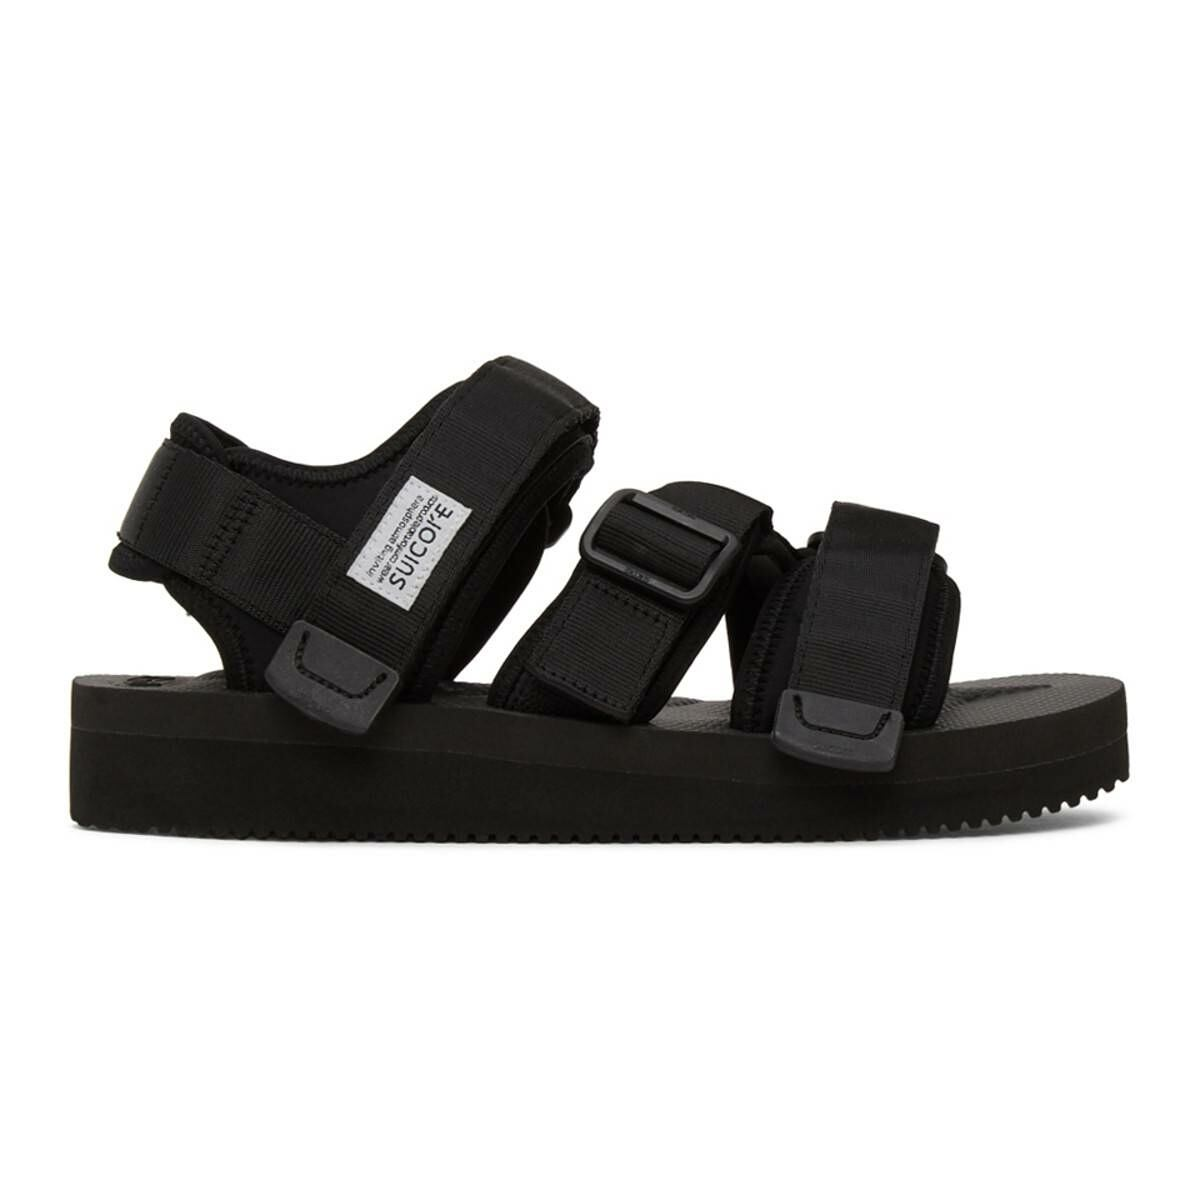 Suicoke Black Kisee-V Sandals Ssense USA MEN Men SHOES Mens SANDALS